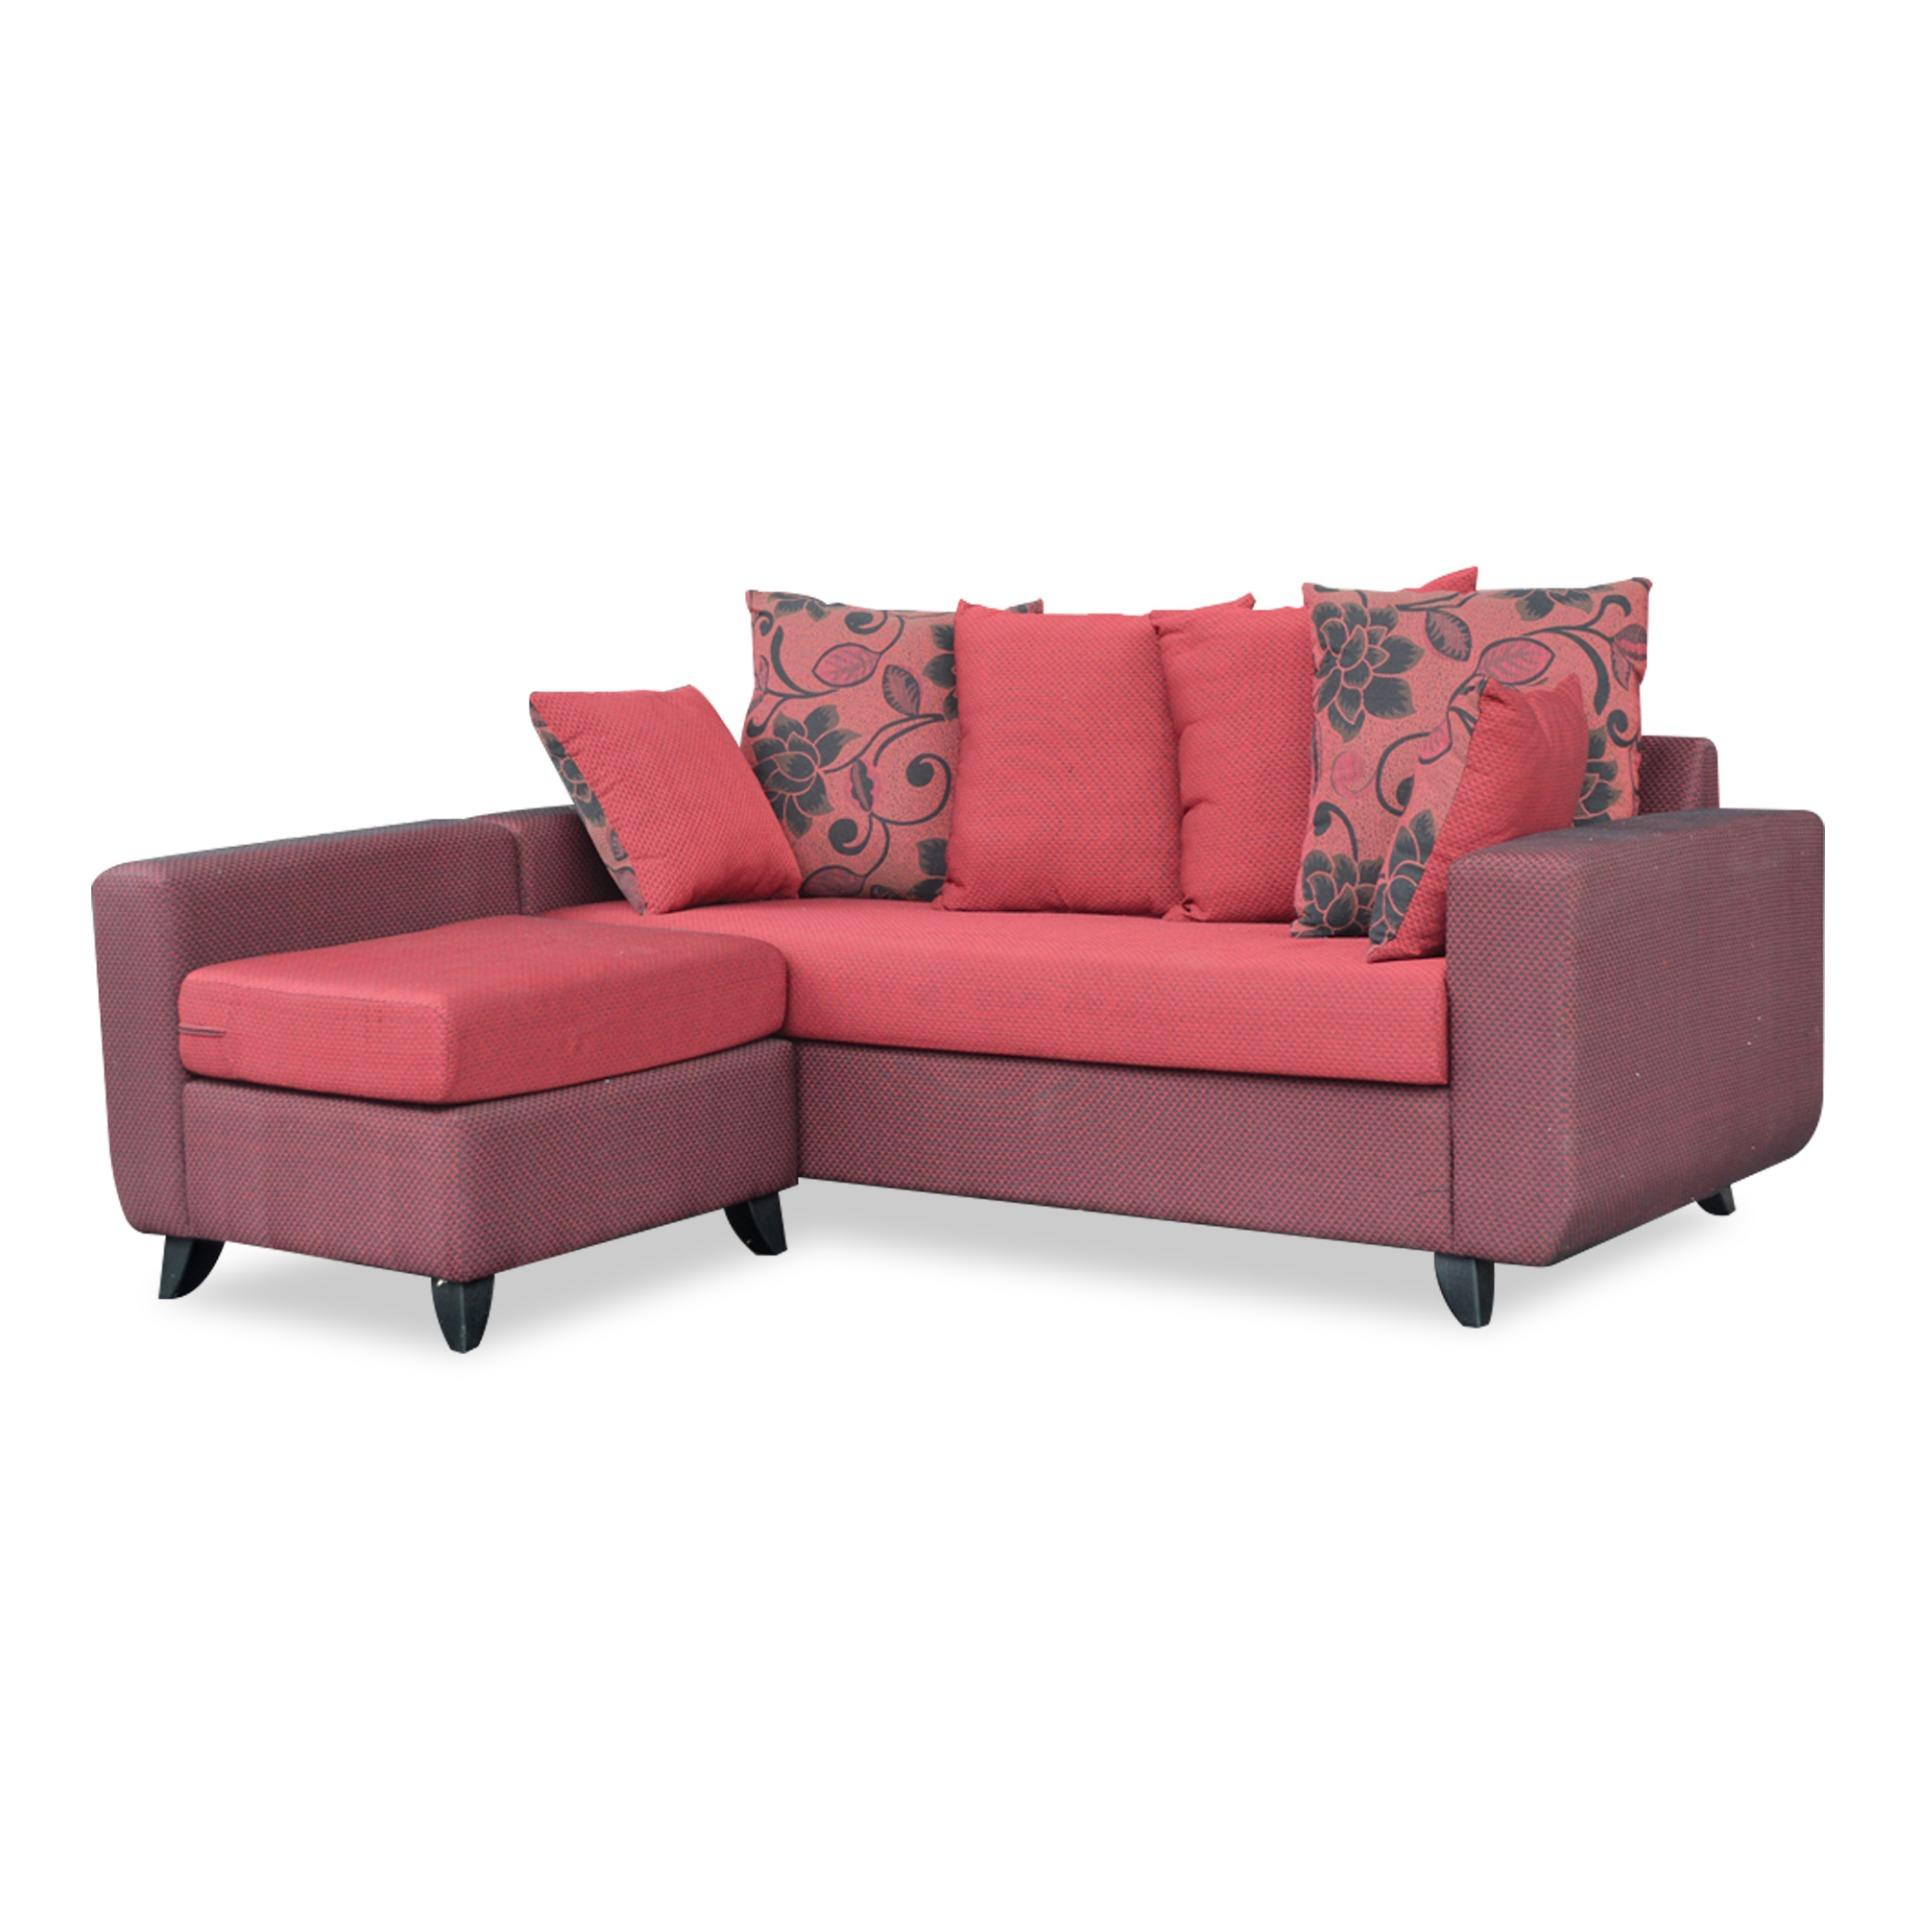 Dafne 3 Seater Sofa With Stool (FREE DELIVERY)(FREE ASSEMBLY)